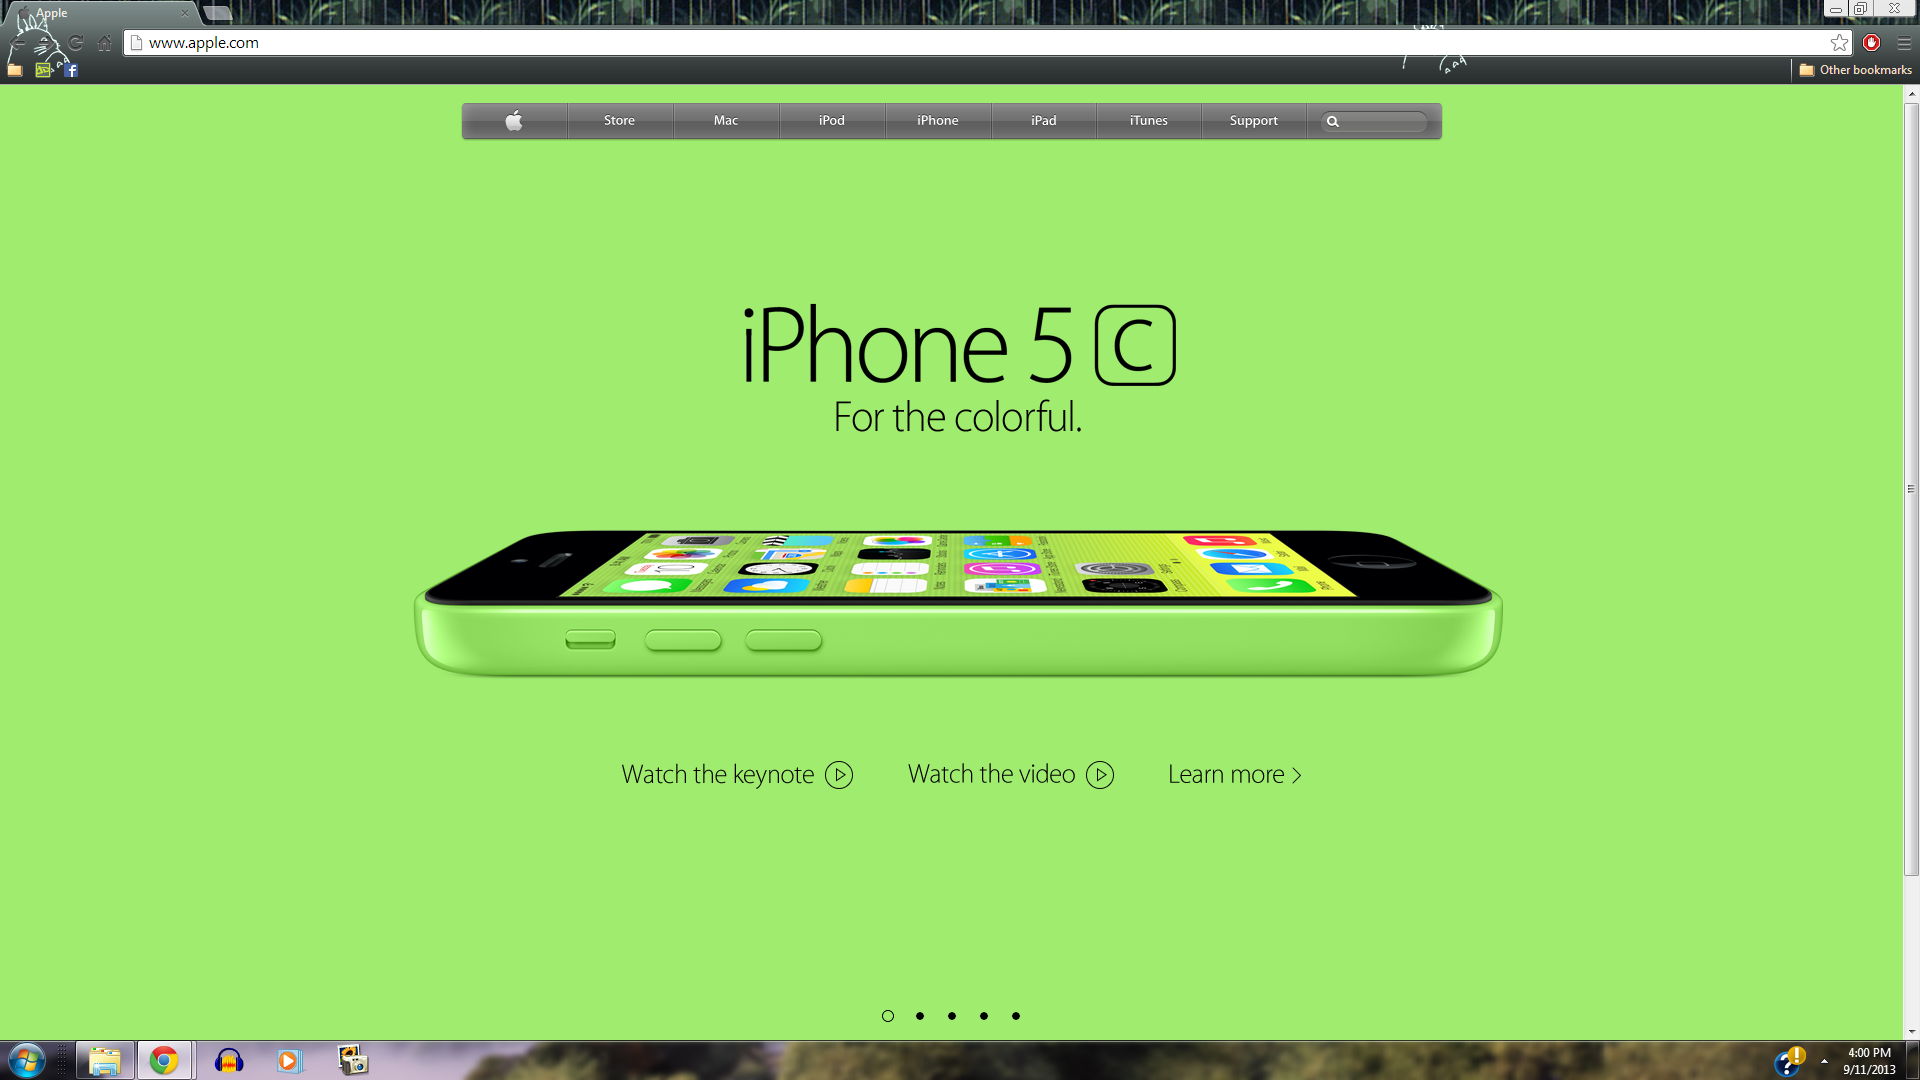 iPhone images iPhone 5c Green Apple Homepage HD wallpaper ...